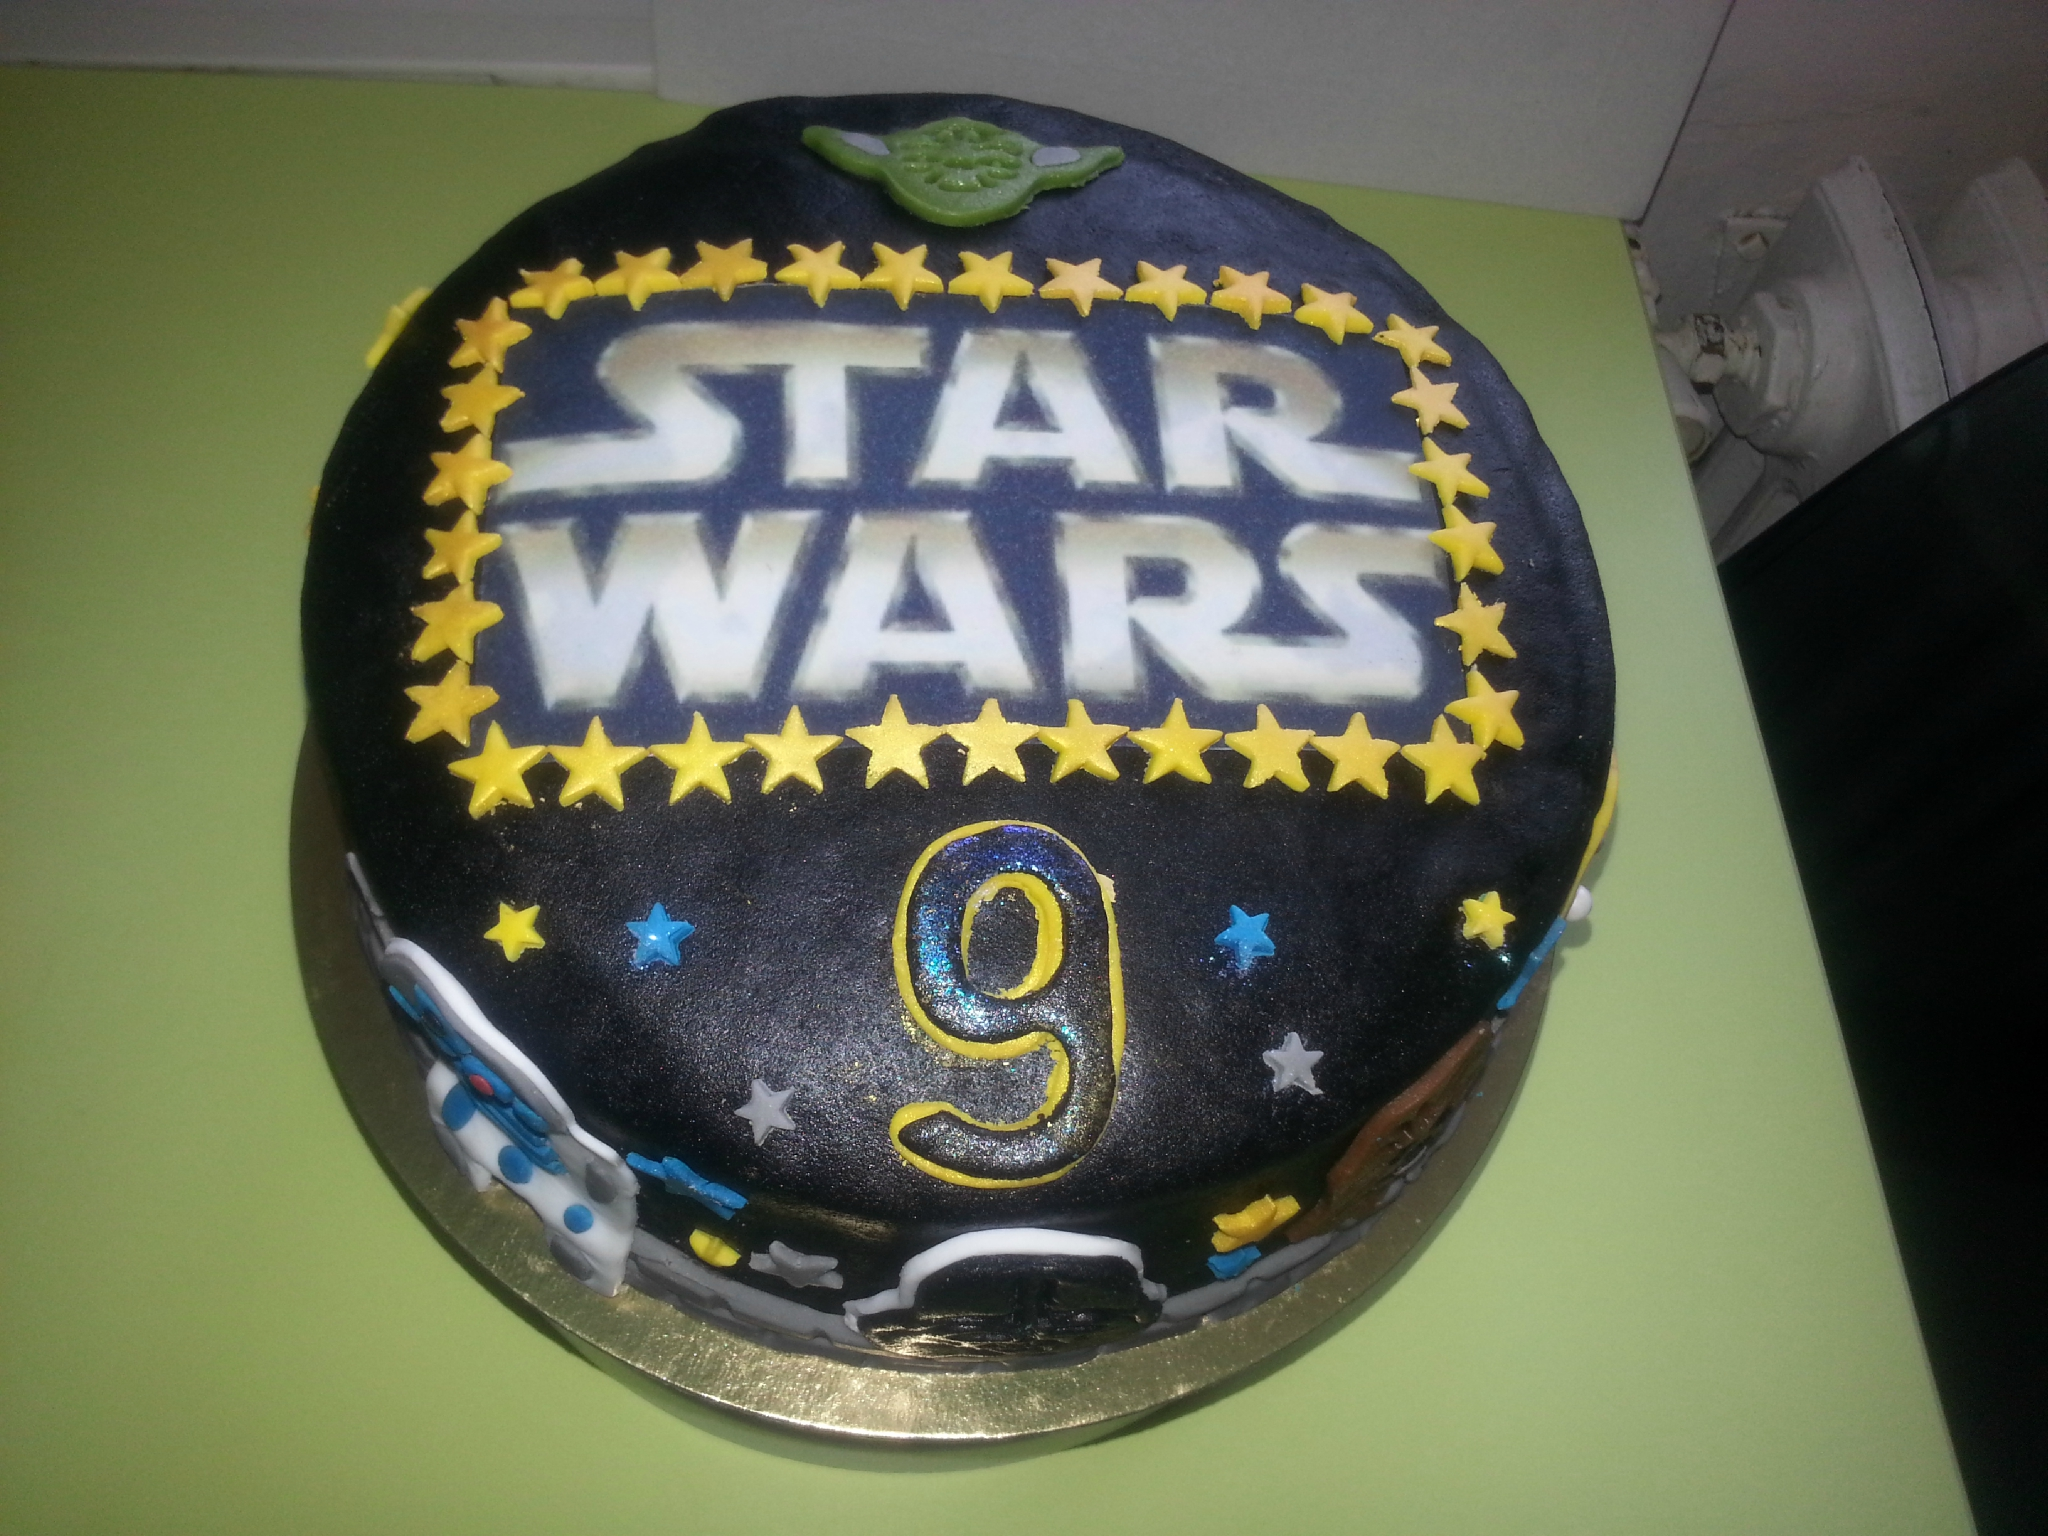 star wars gateau anniversaire xd23 jornalagora. Black Bedroom Furniture Sets. Home Design Ideas